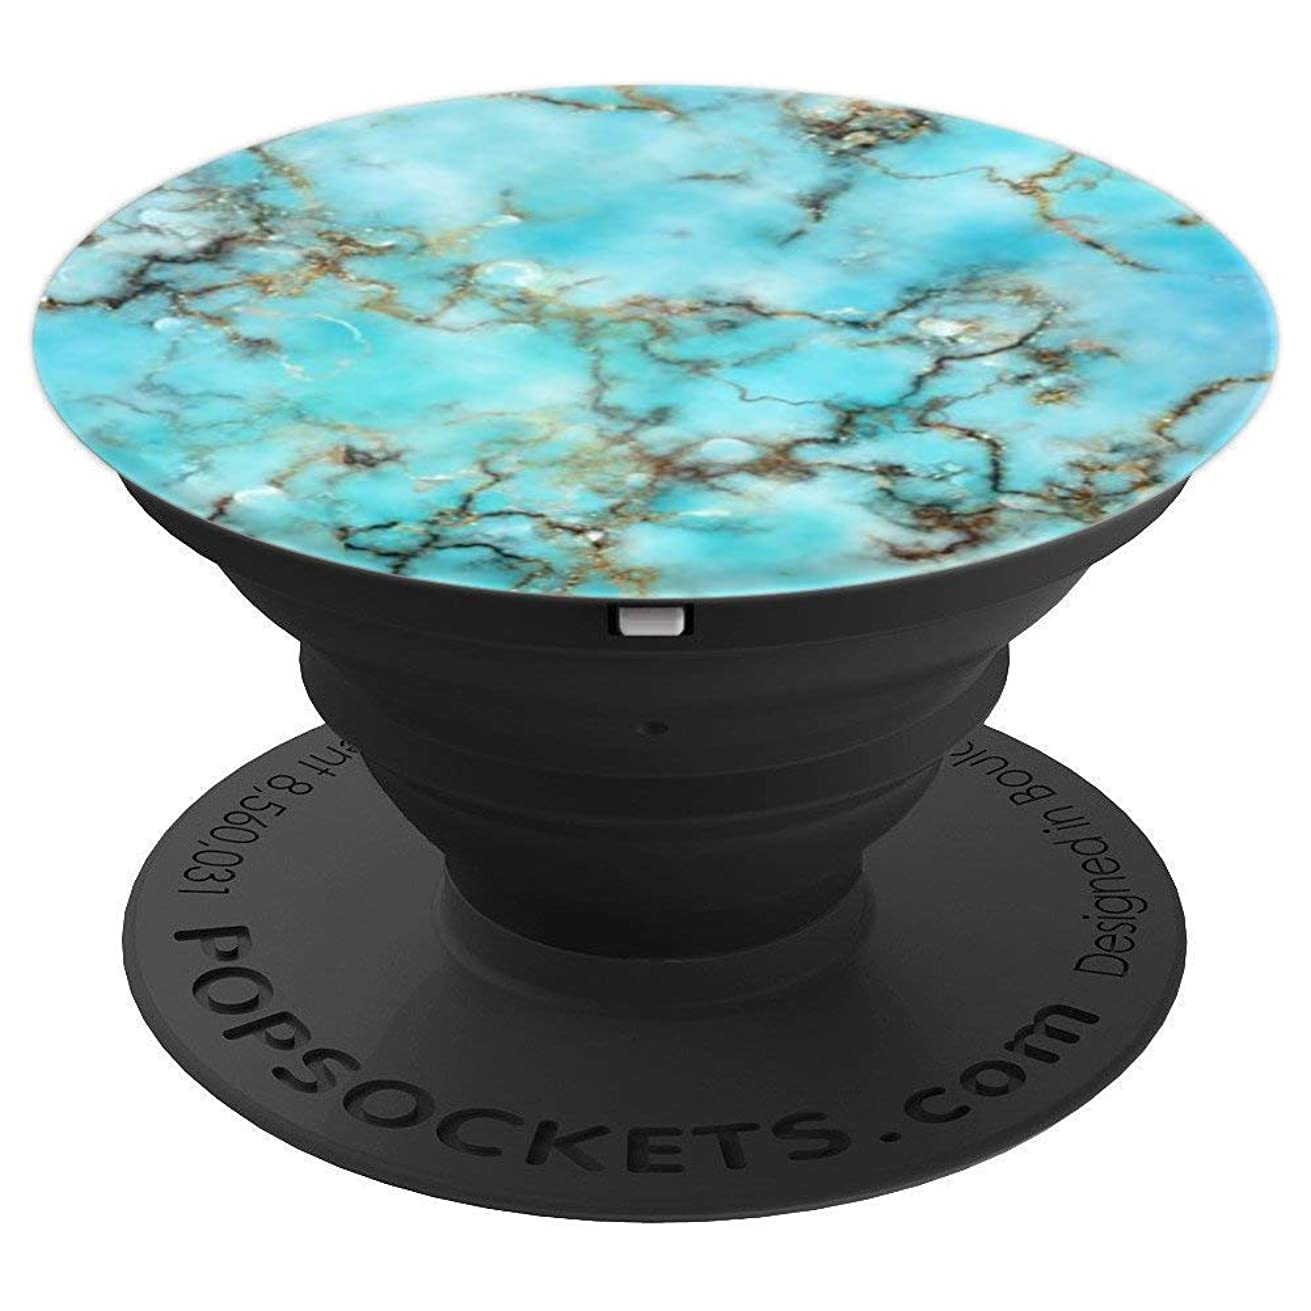 Turquoise Gold Marble Stone, Teal - PopSockets Grip and Stand for Phones and Tablets